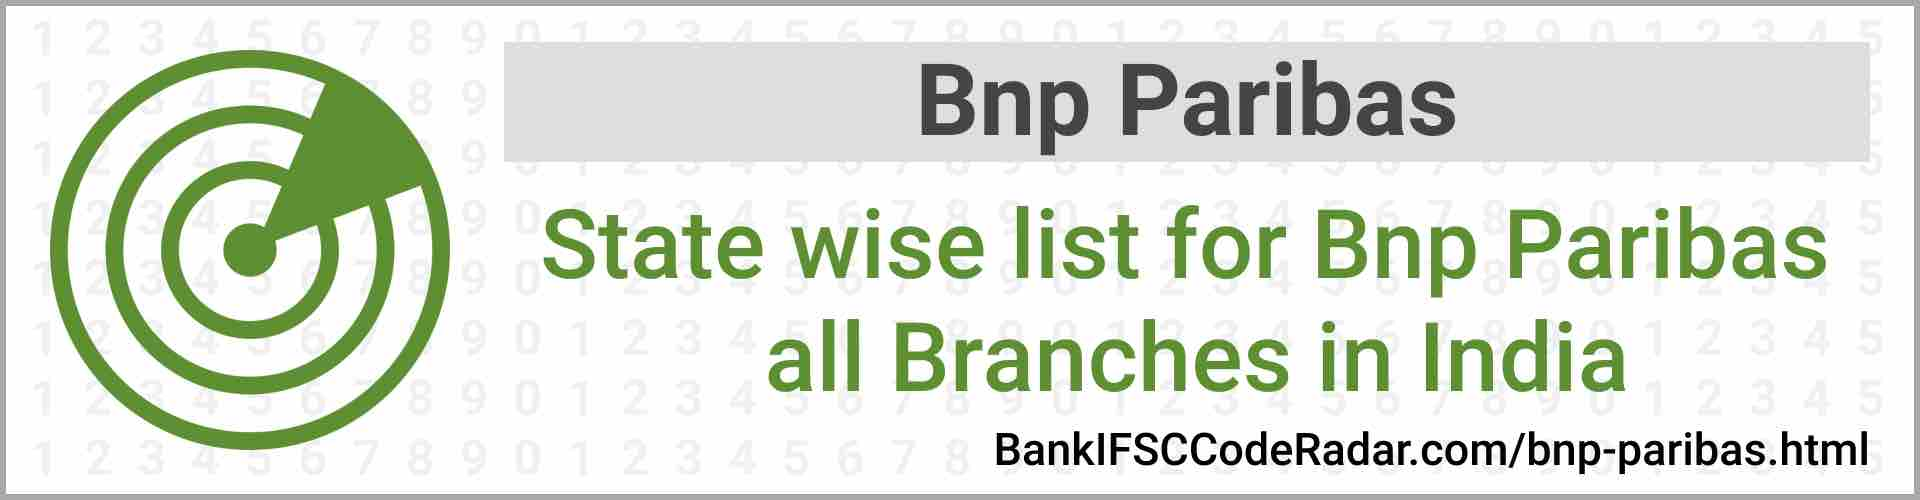 Bnp Paribas All Branches India